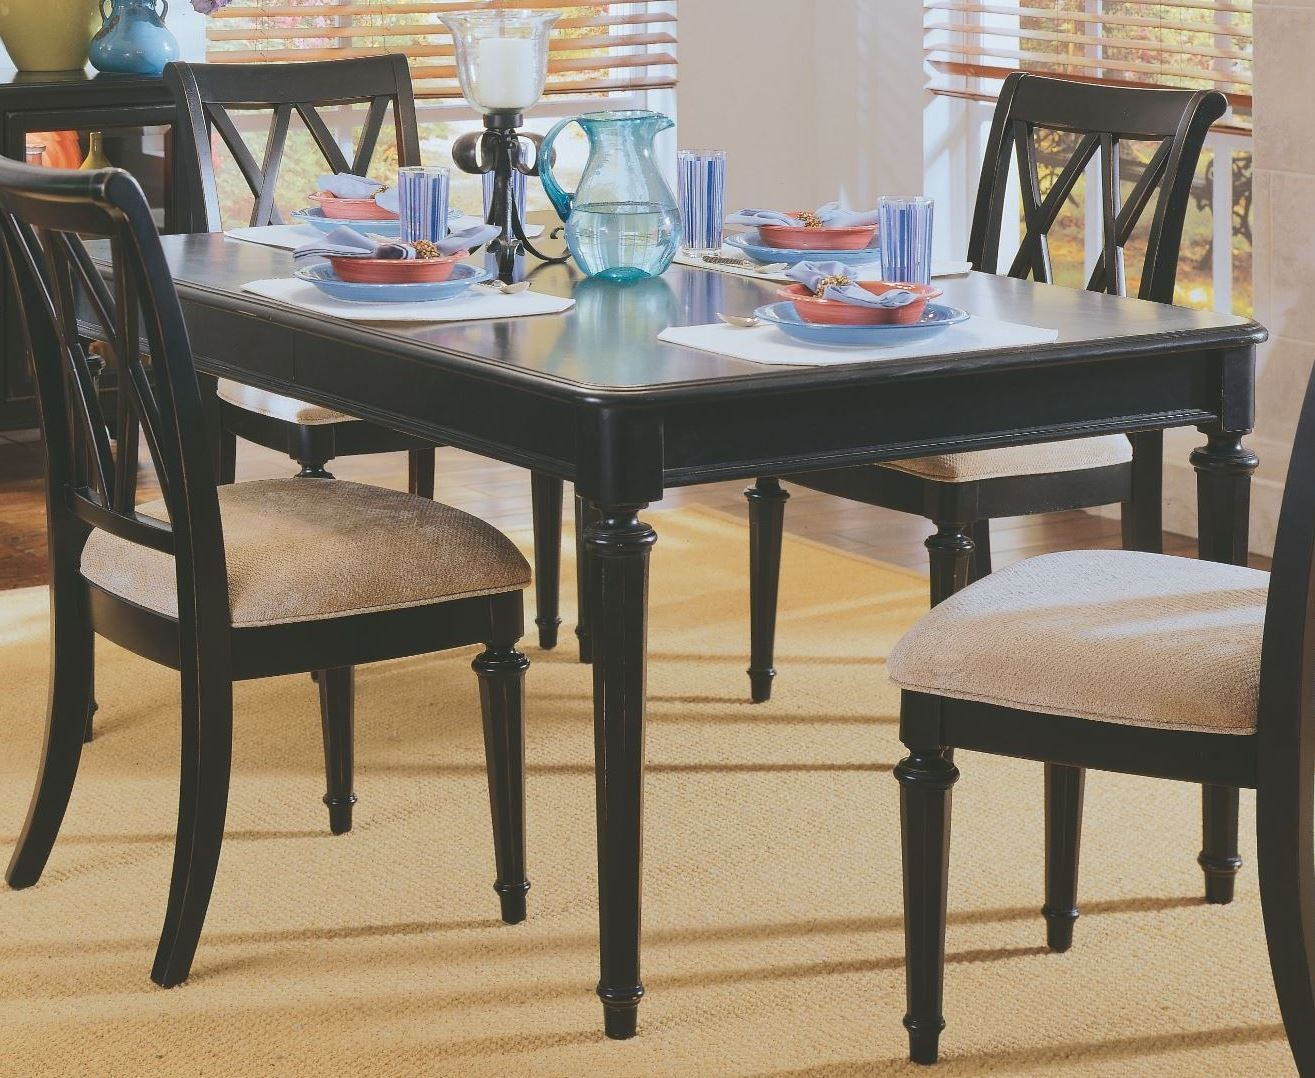 camden black extendable leg dining table from american drew 919 760n coleman furniture. Black Bedroom Furniture Sets. Home Design Ideas